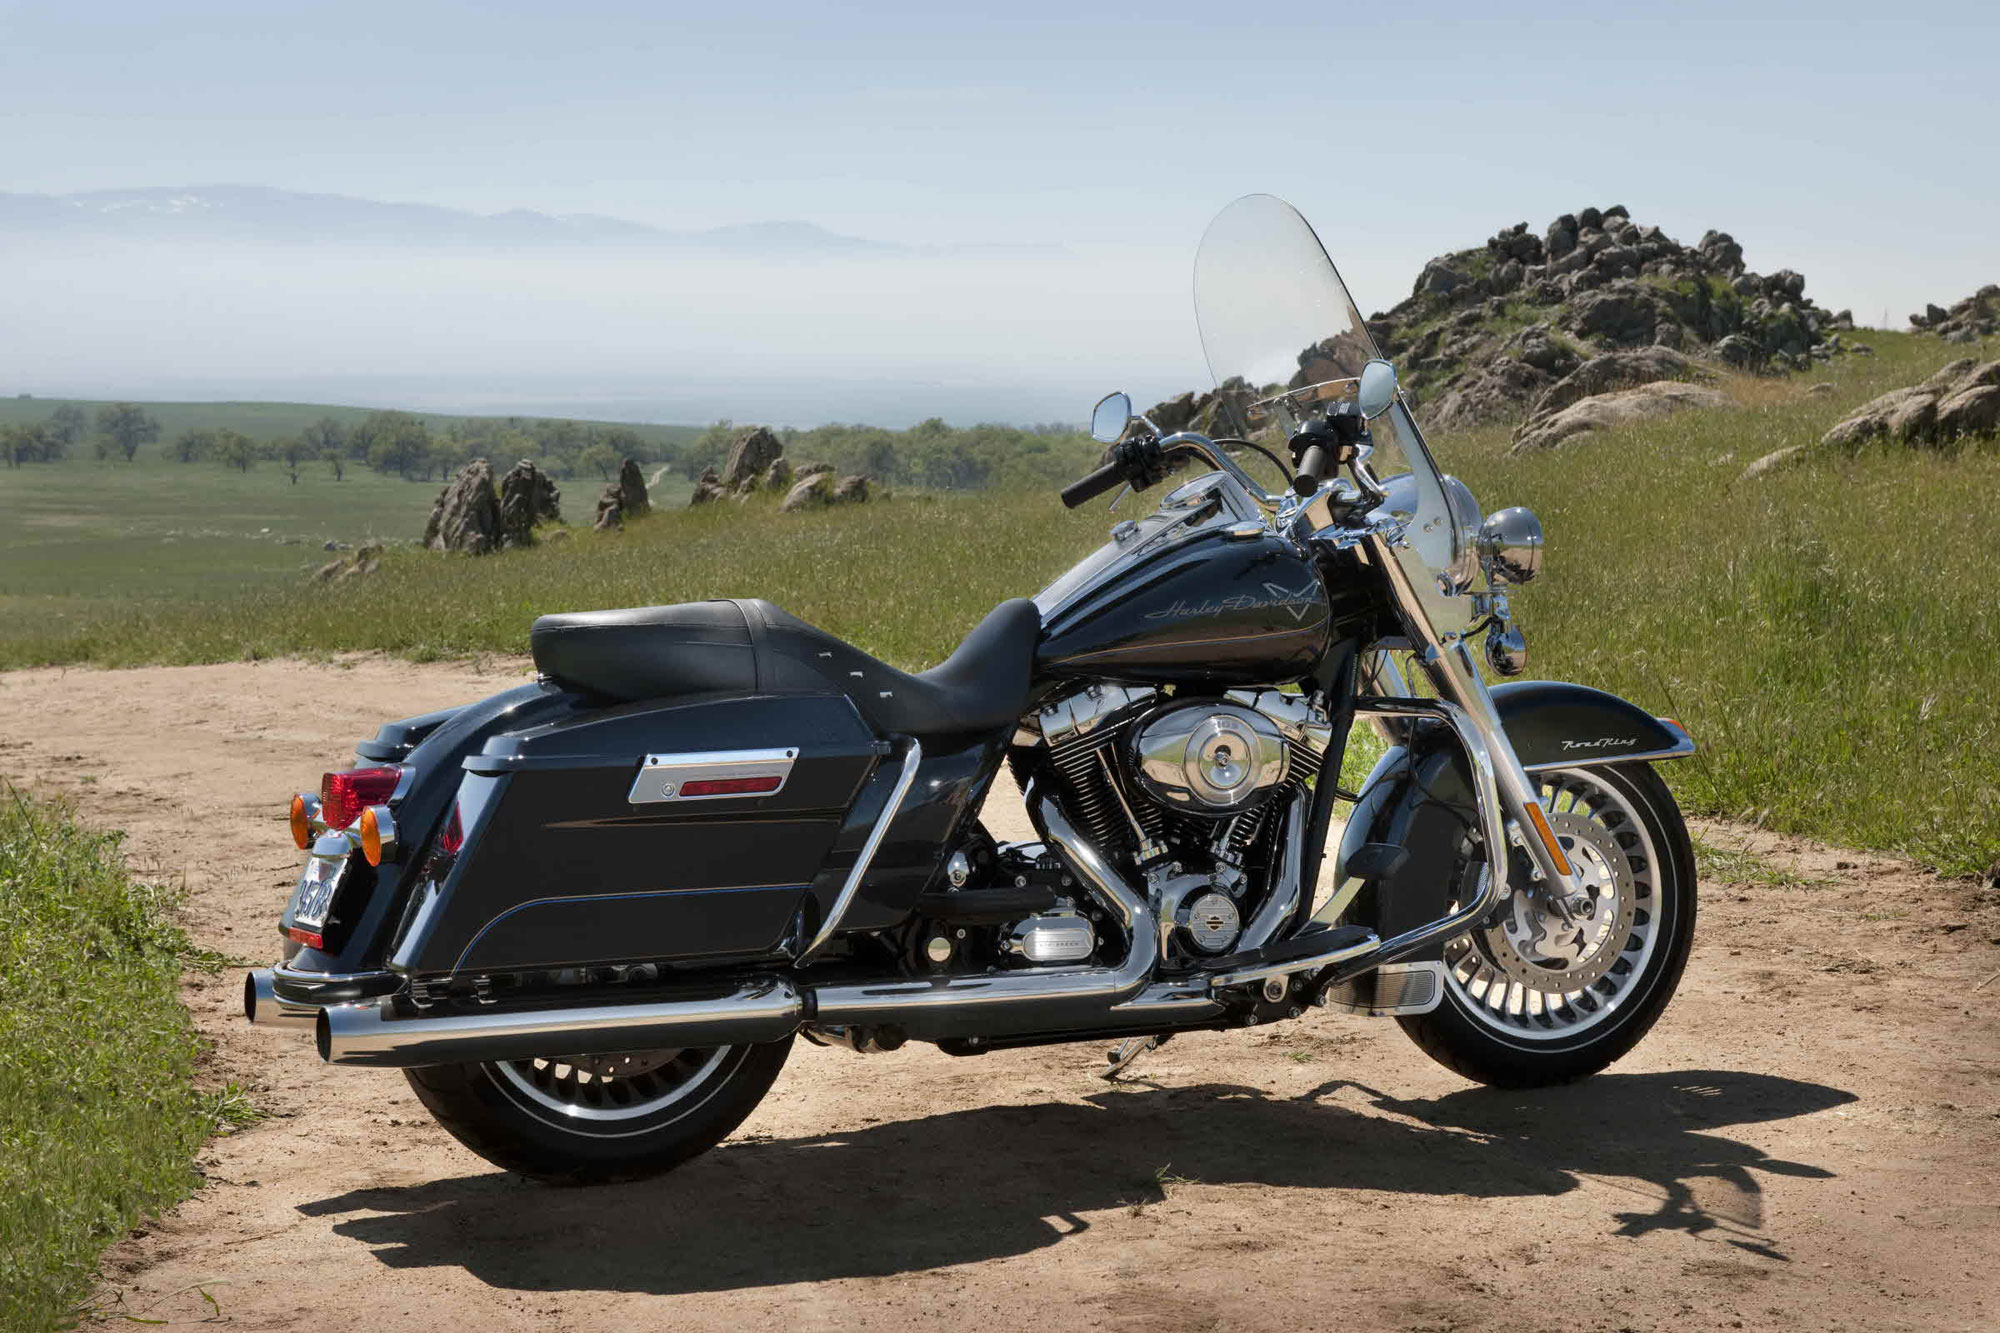 2012 Harley-Davidson FLHR Road King Review